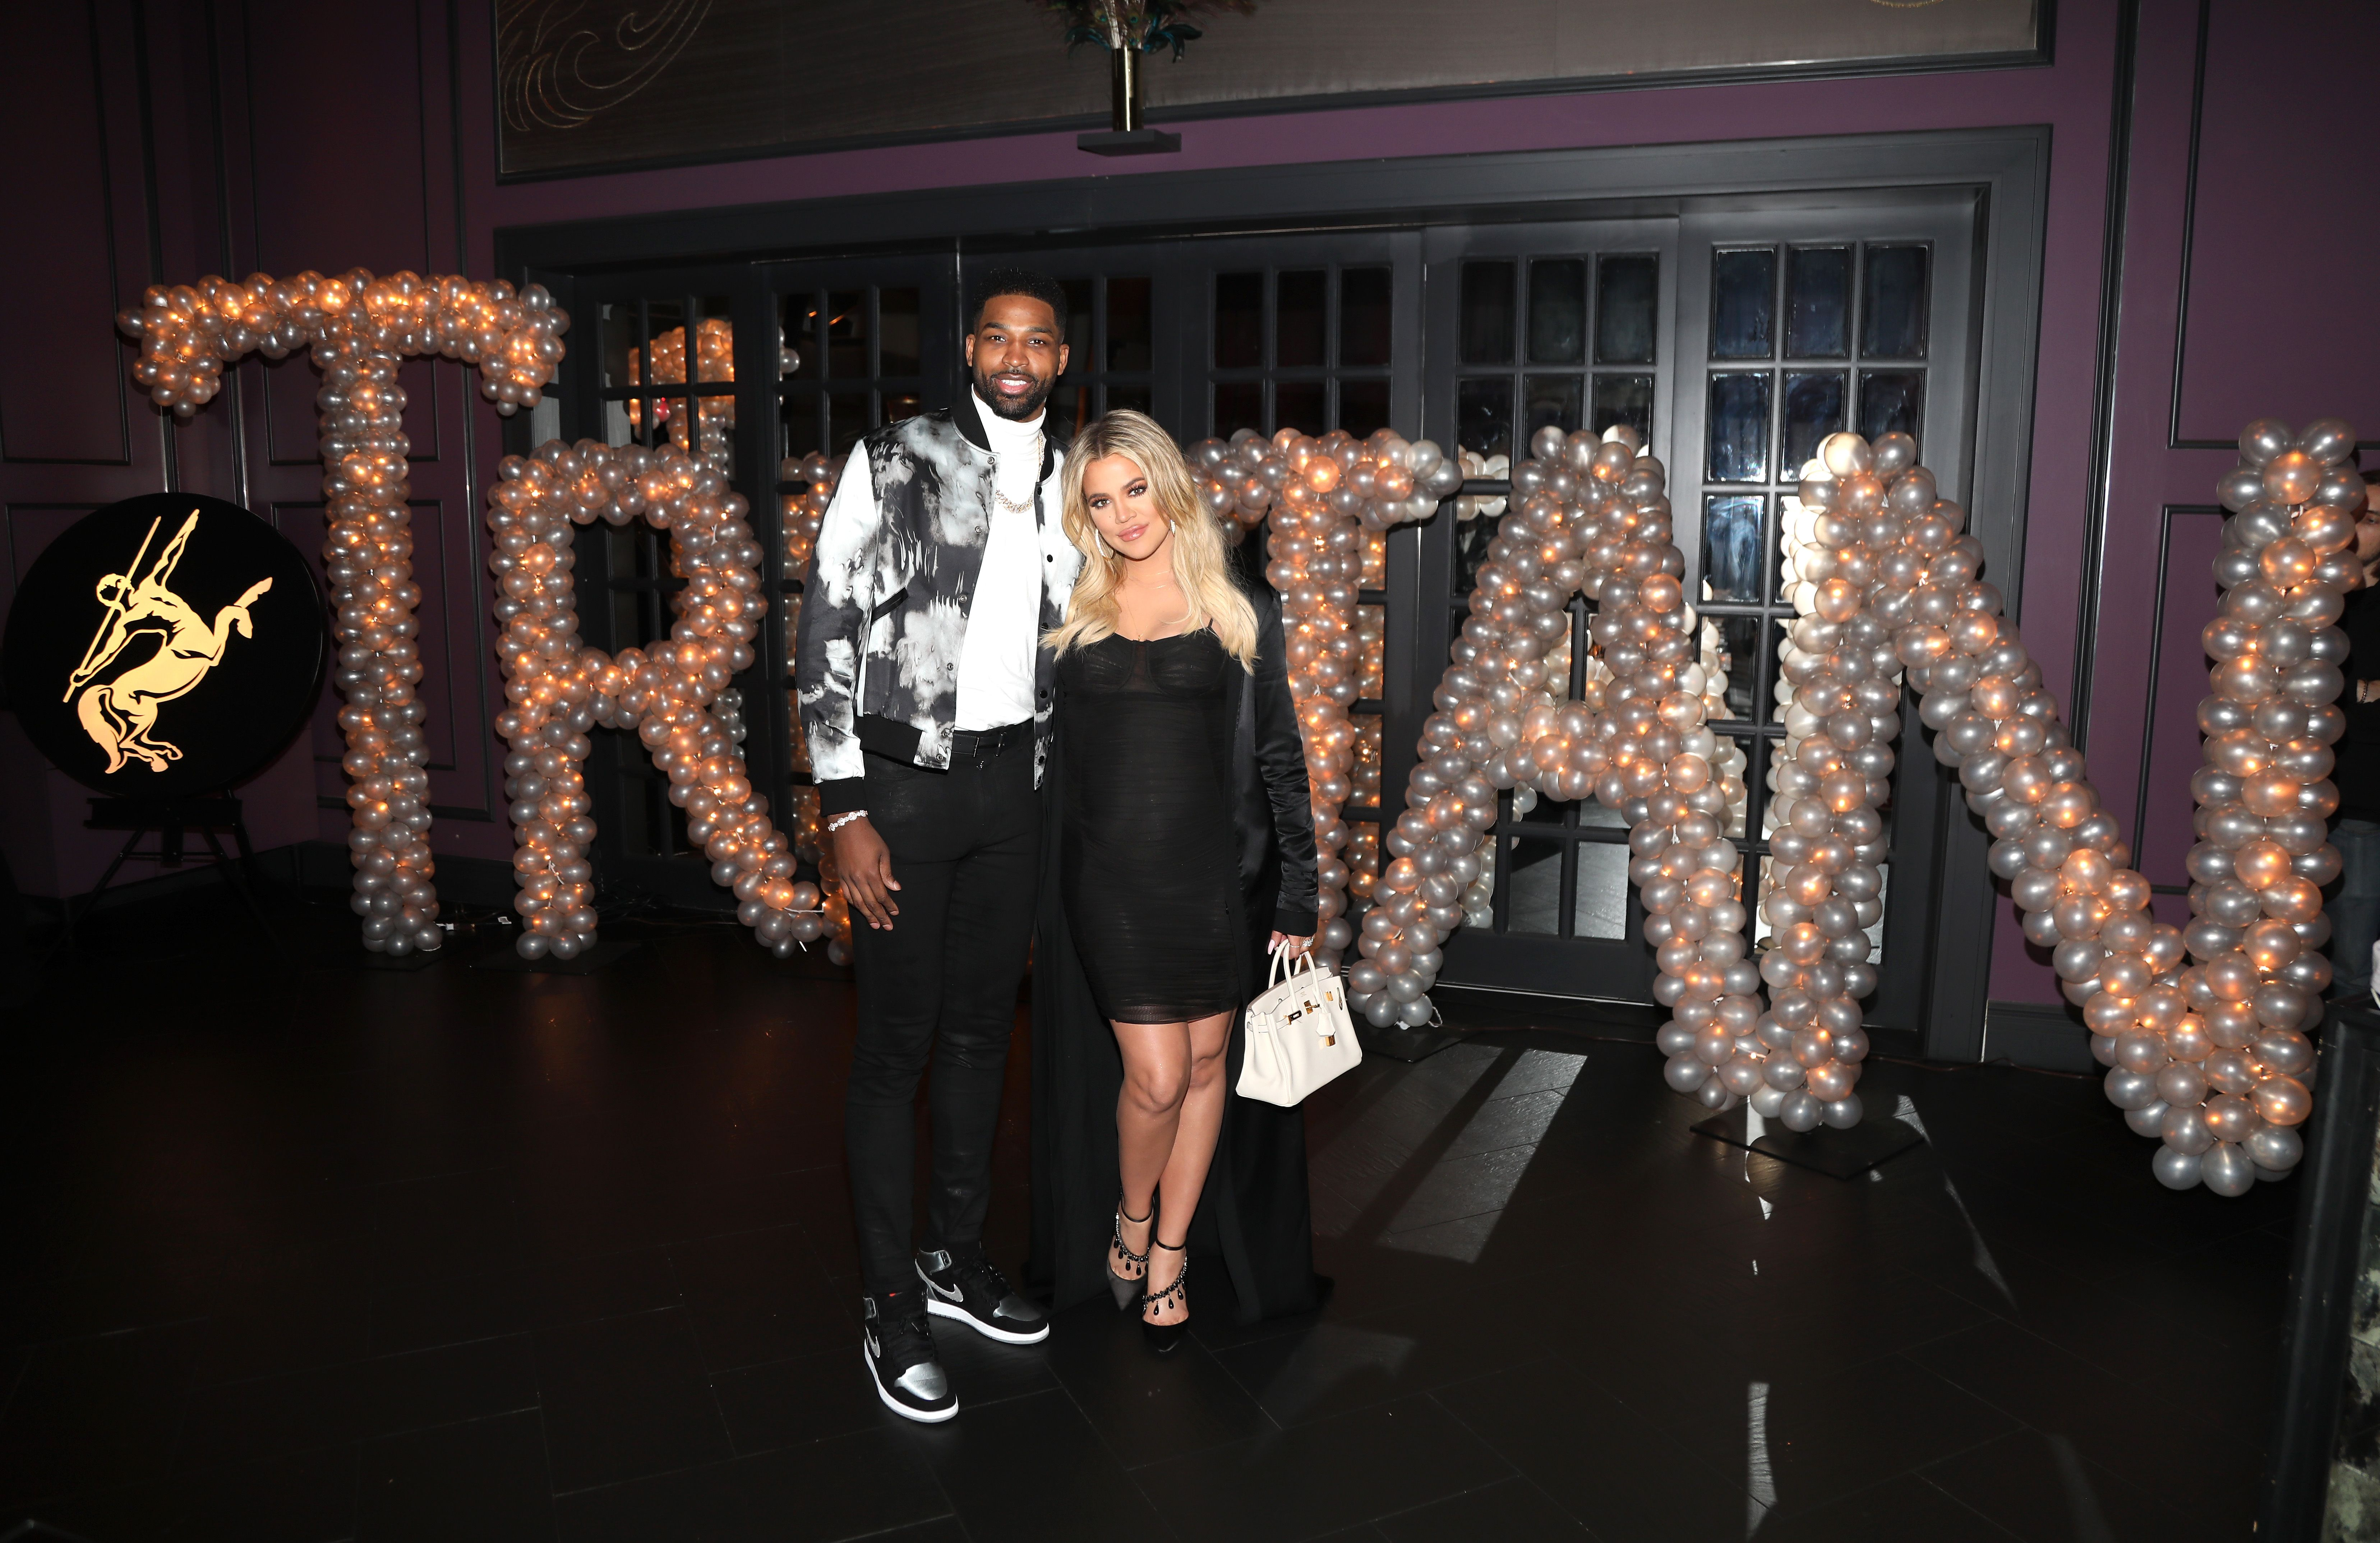 Now the Kardashian-Jenners have all unfollowed Tristan Thompson on social media